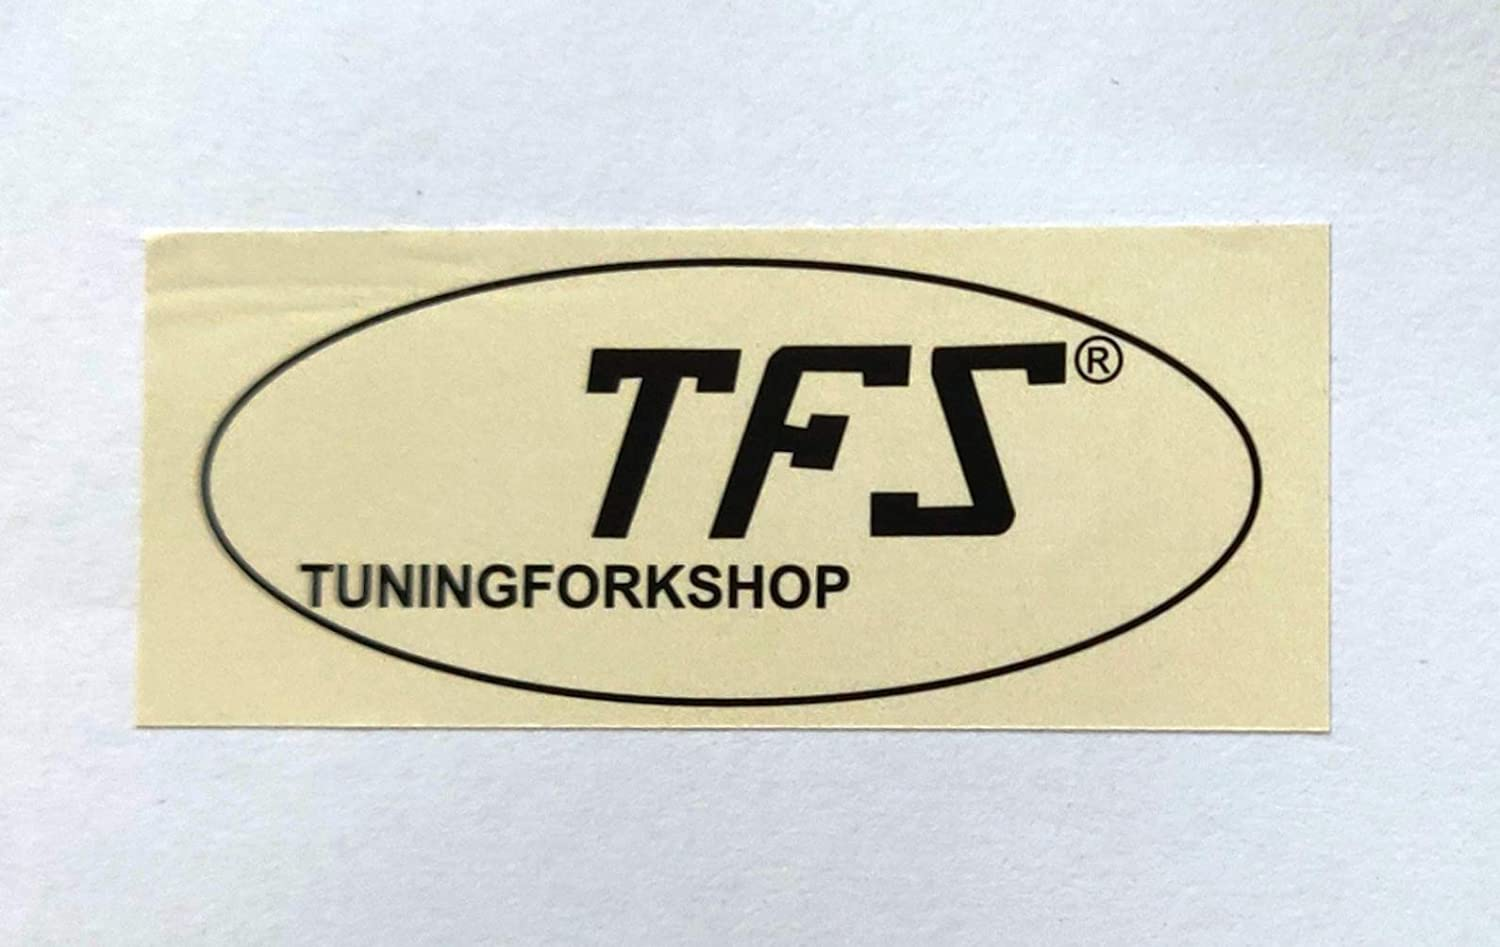 TFS Tuningforkshop Professional Leg Rubber ACTIVATOR Accessory for Tuning Fork